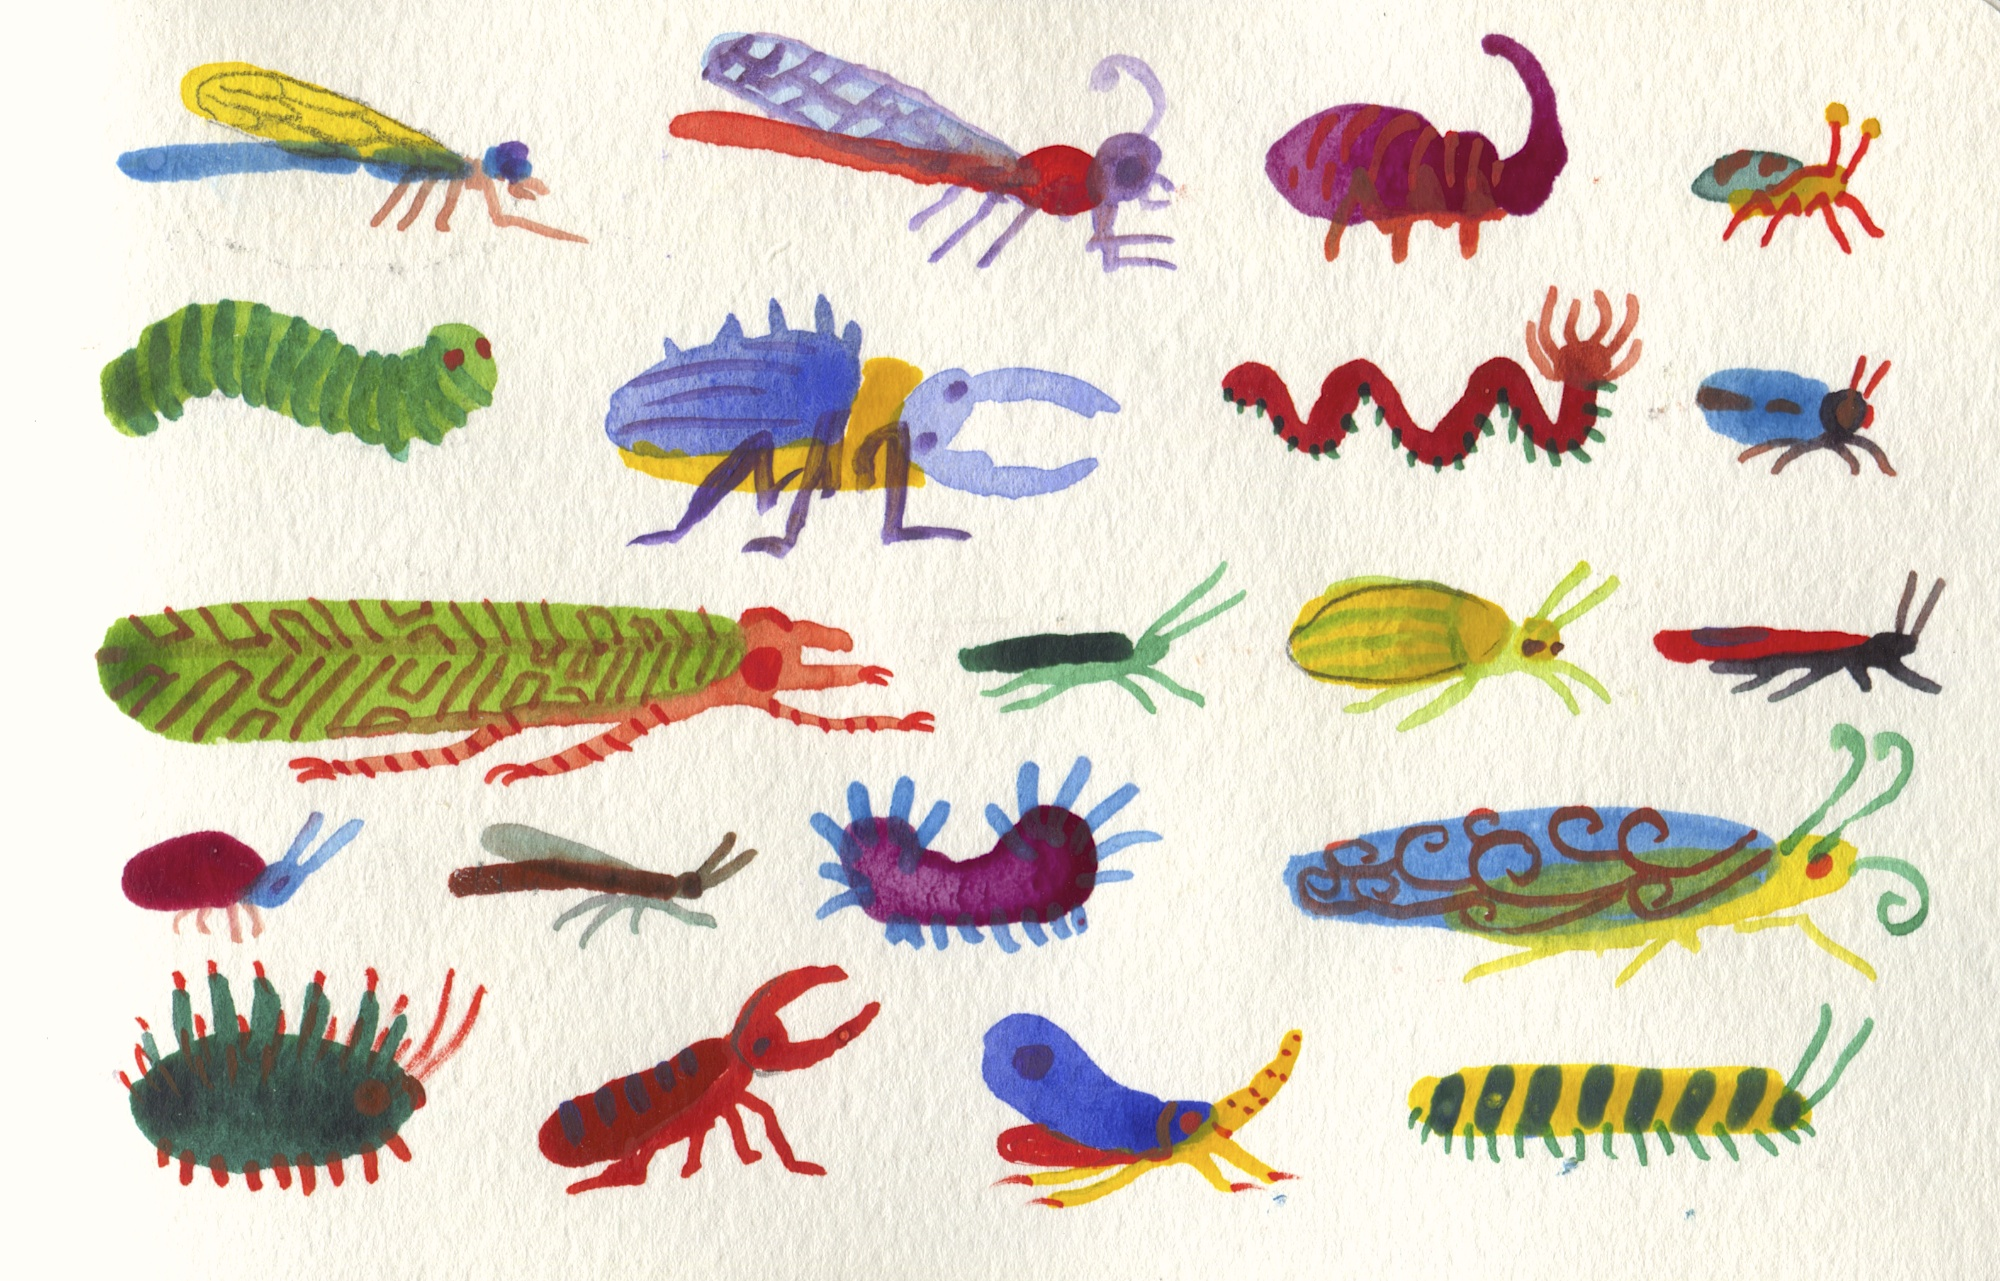 insect and bug artwork